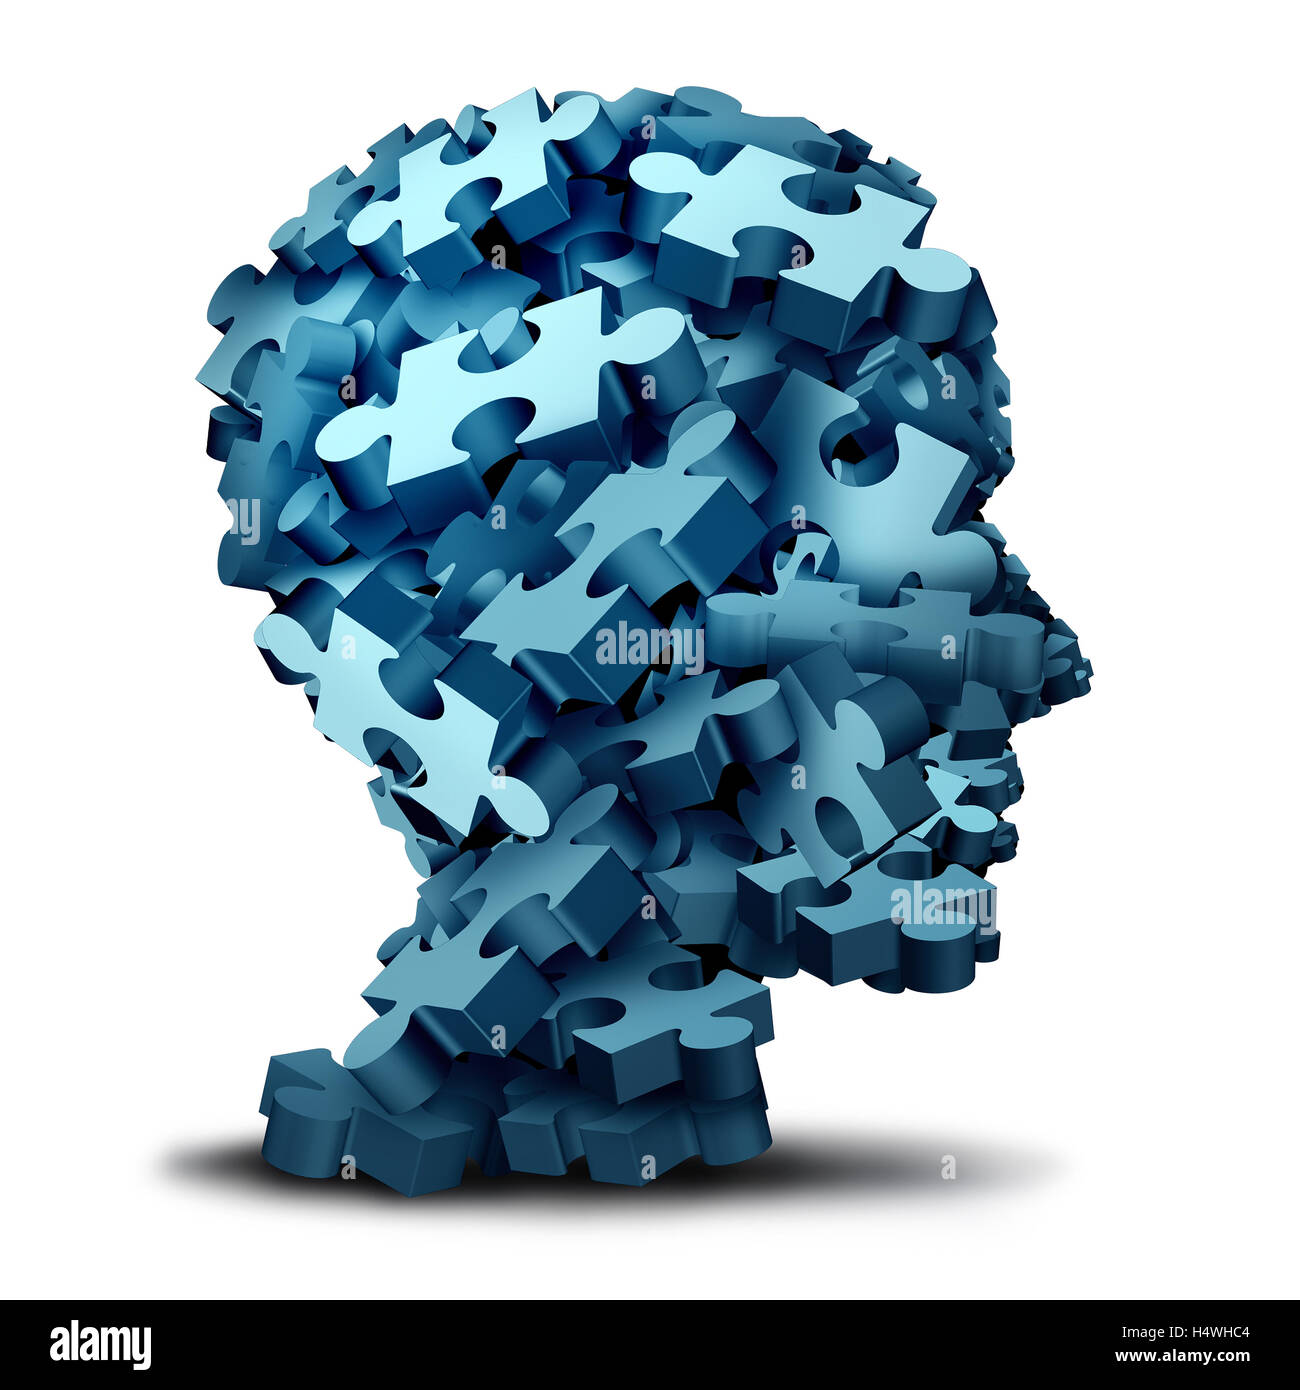 Psychology puzzle concept as a a group of 3D illustration jigsaw pieces shaped as a human head as a mental health - Stock Image